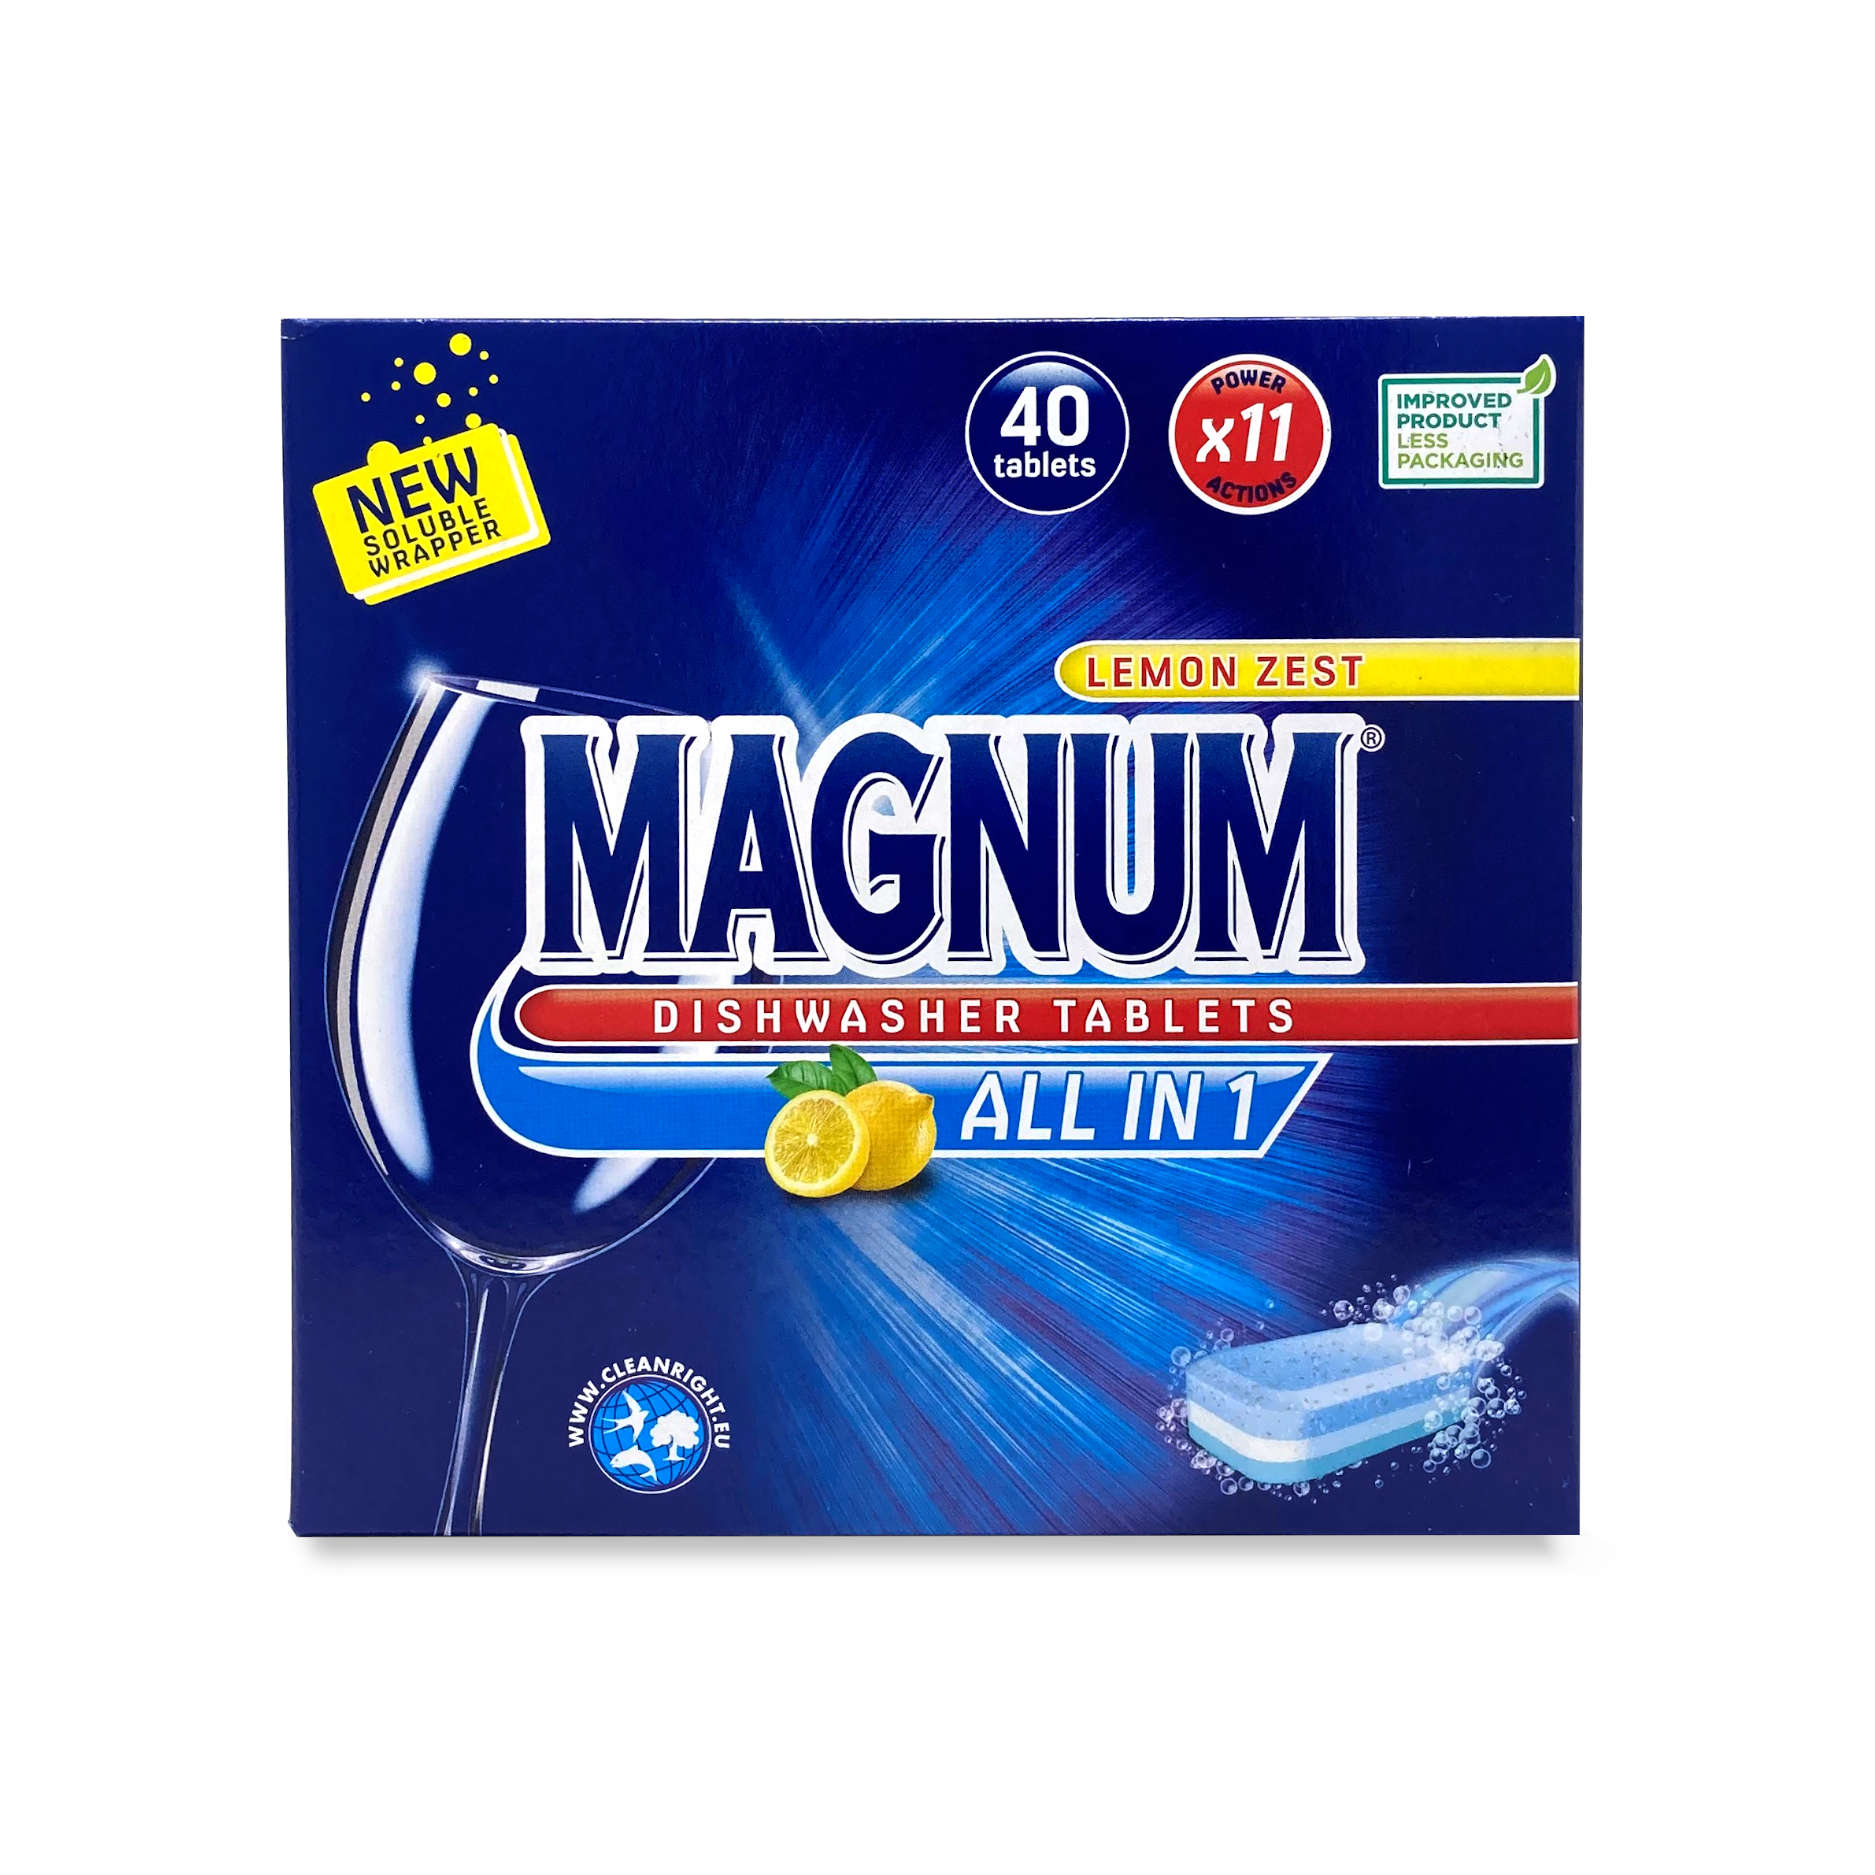 Magnum Lemon Zest All In 1 Dishwasher Tablets 40 Pack